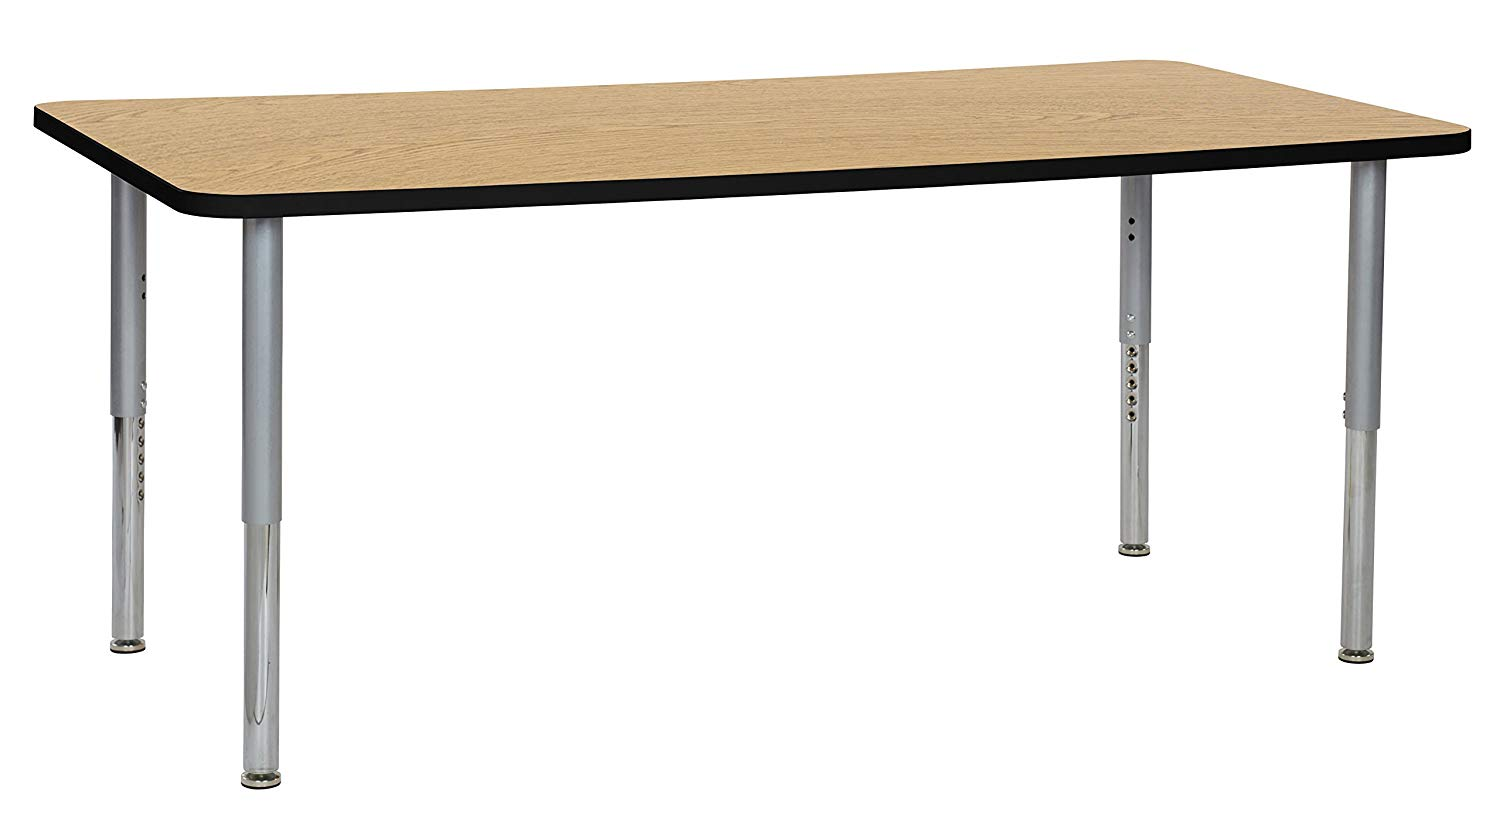 """ECR4Kids Premium Thermo-Fused 36"""" x 72"""" Mobile Rectangular School Activity Table, Super Legs w/Glides and Casters, Adjustable Height 19-30 inch (Oak/Black/Silver)"""